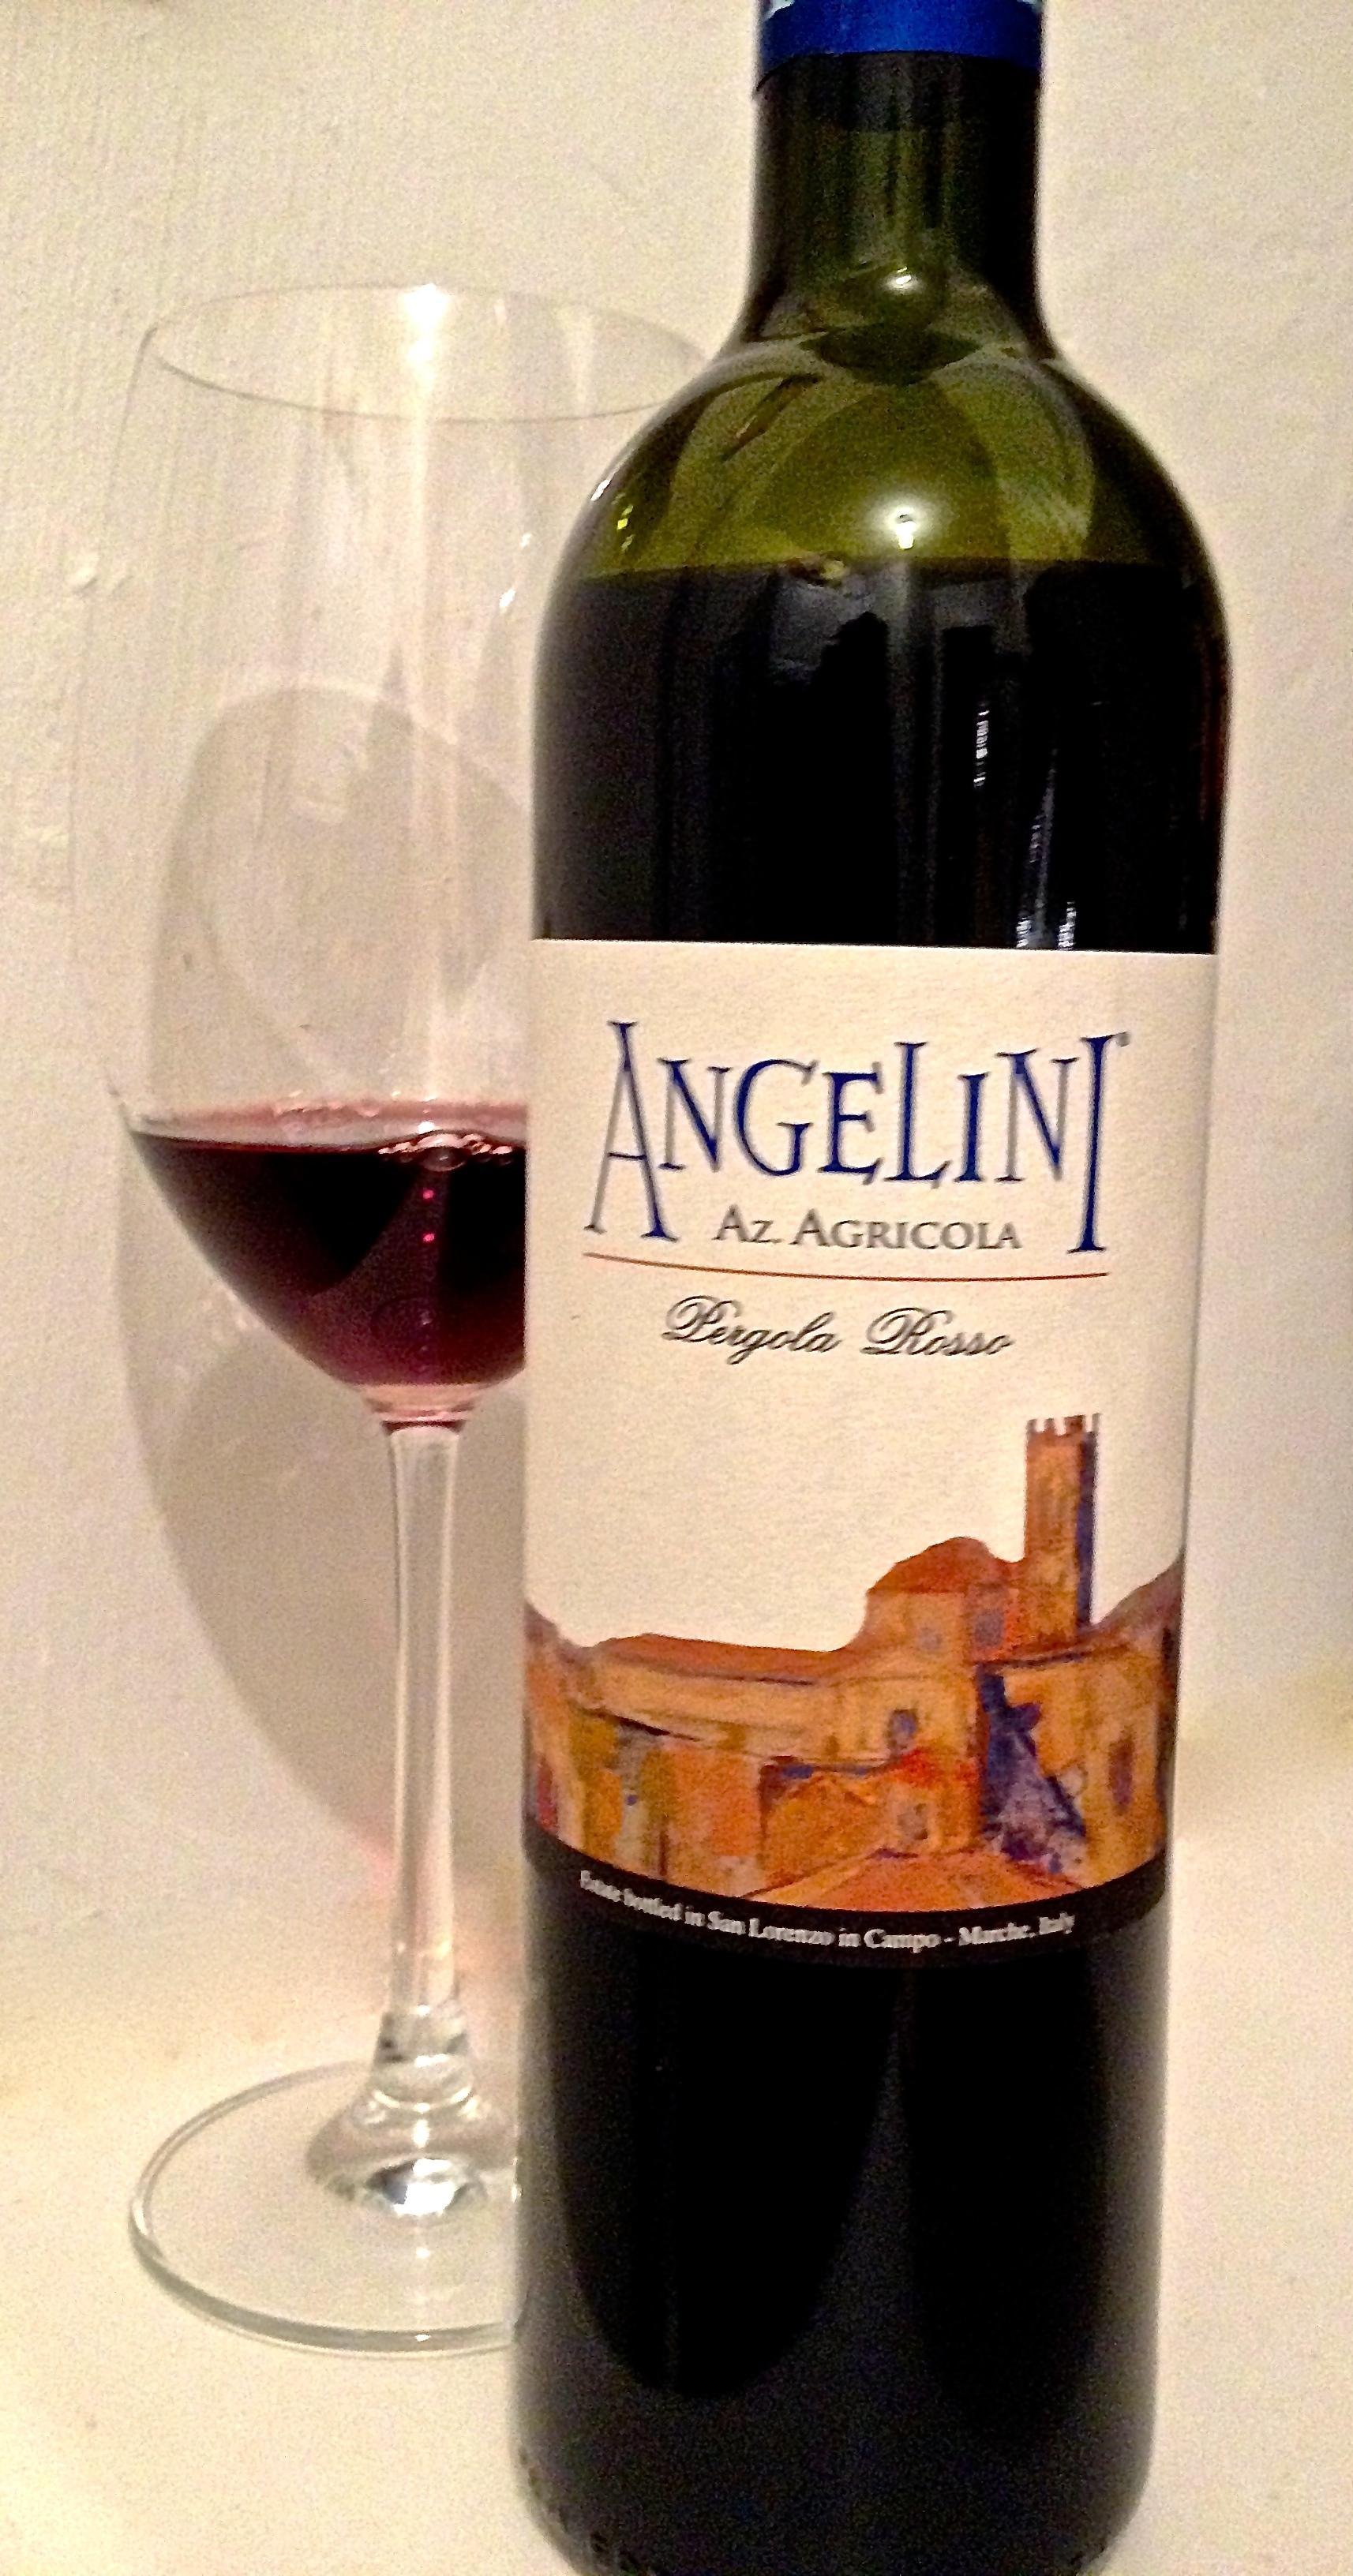 Interesting Wines of Italy: 2012 Angelini Pergola Rosso 1